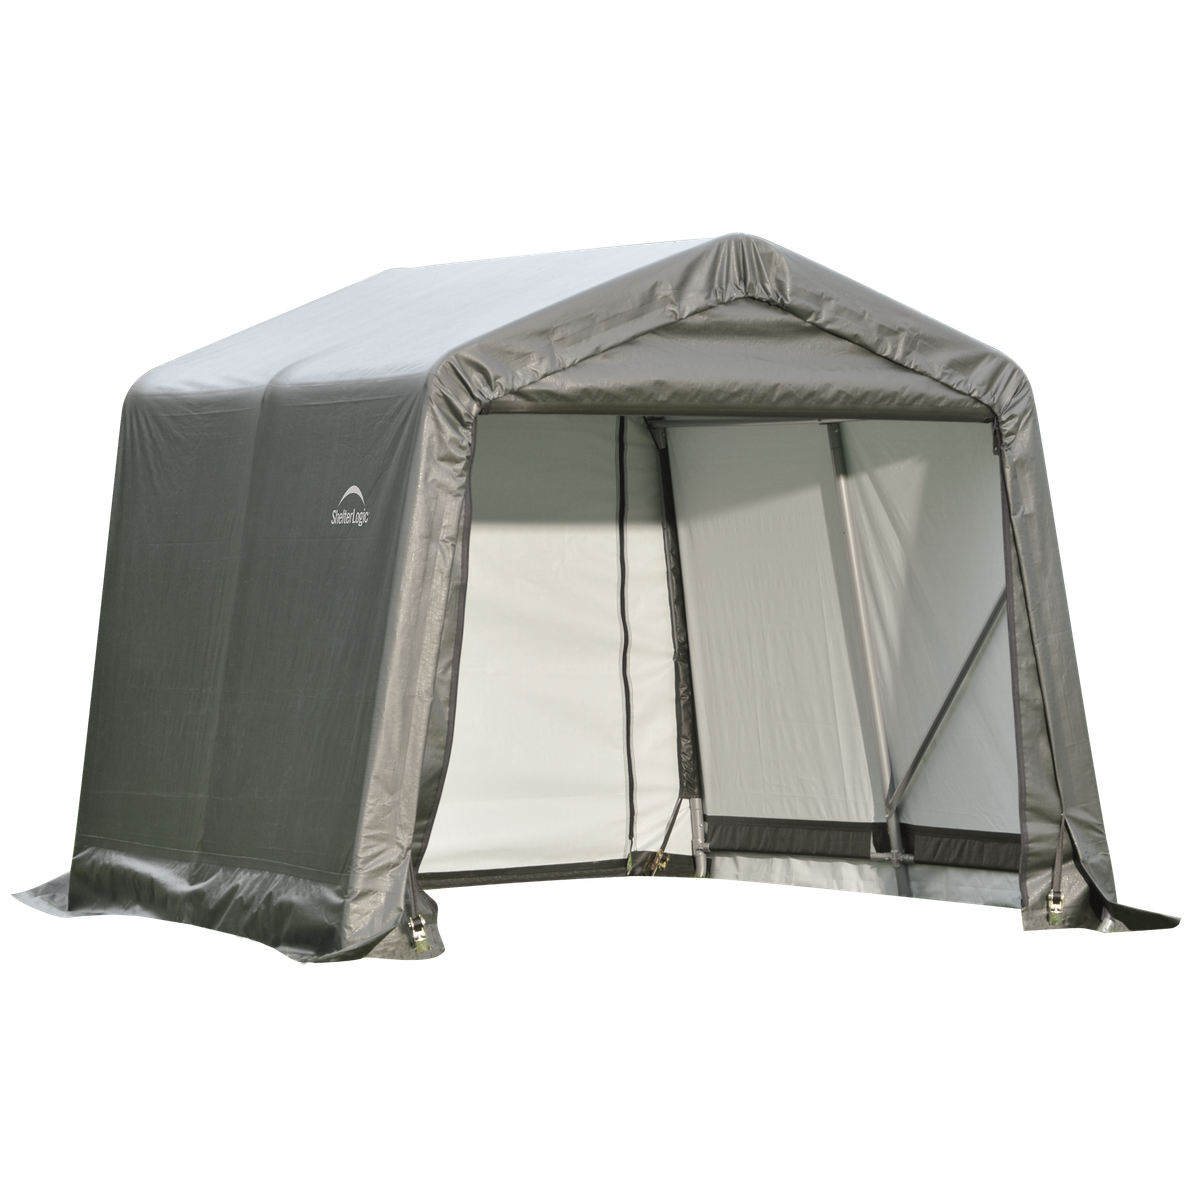 8x12x8 Round Shelter Green Colour